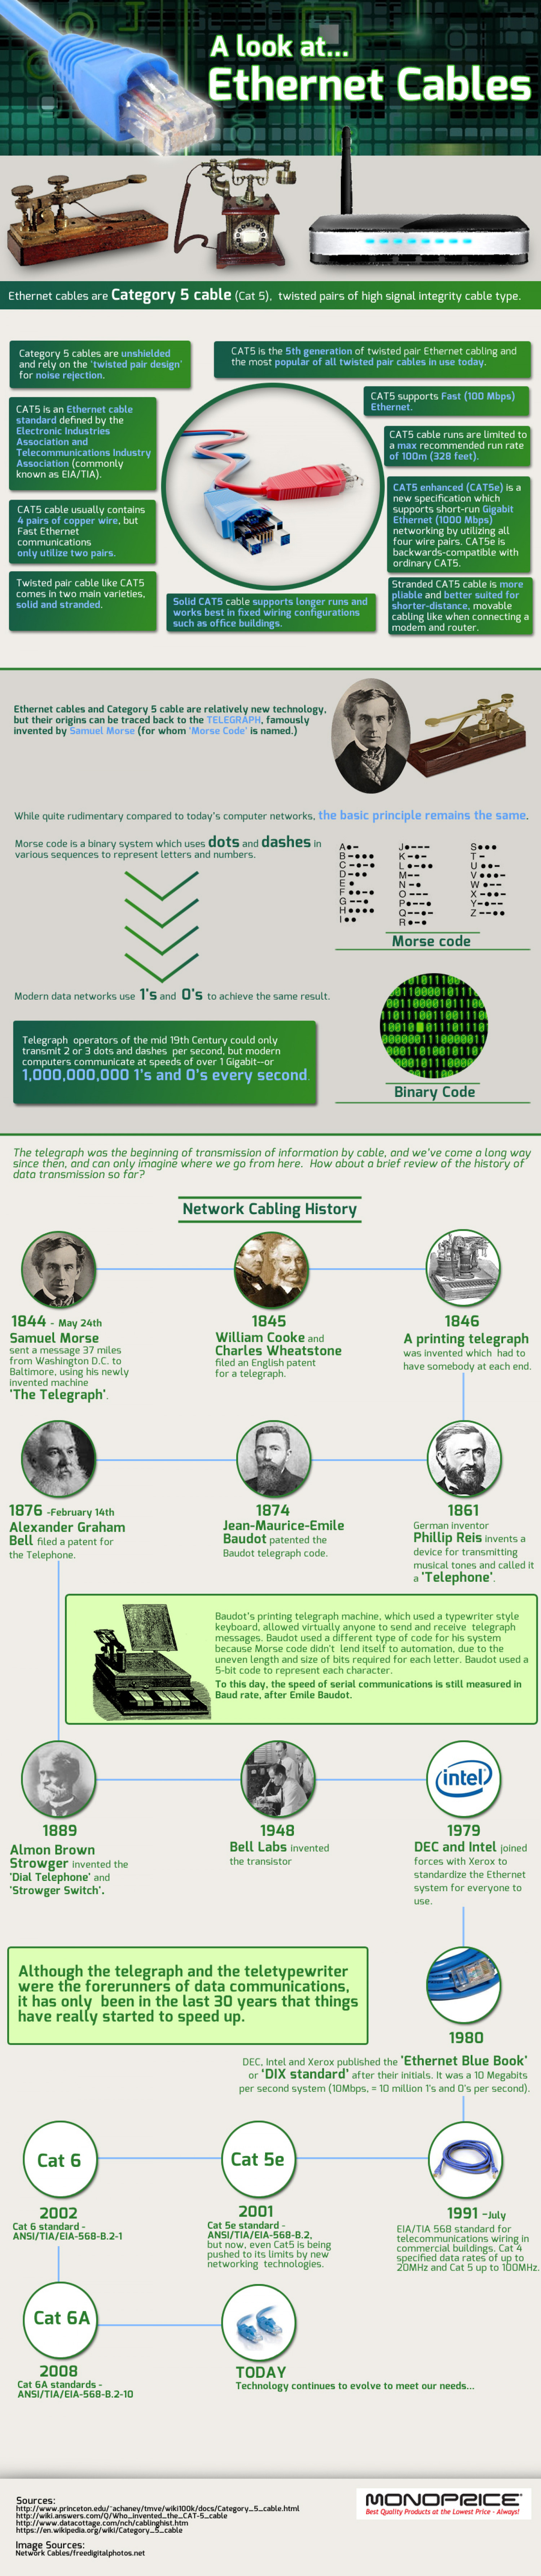 A Look At... Ethernet Cables Infographic